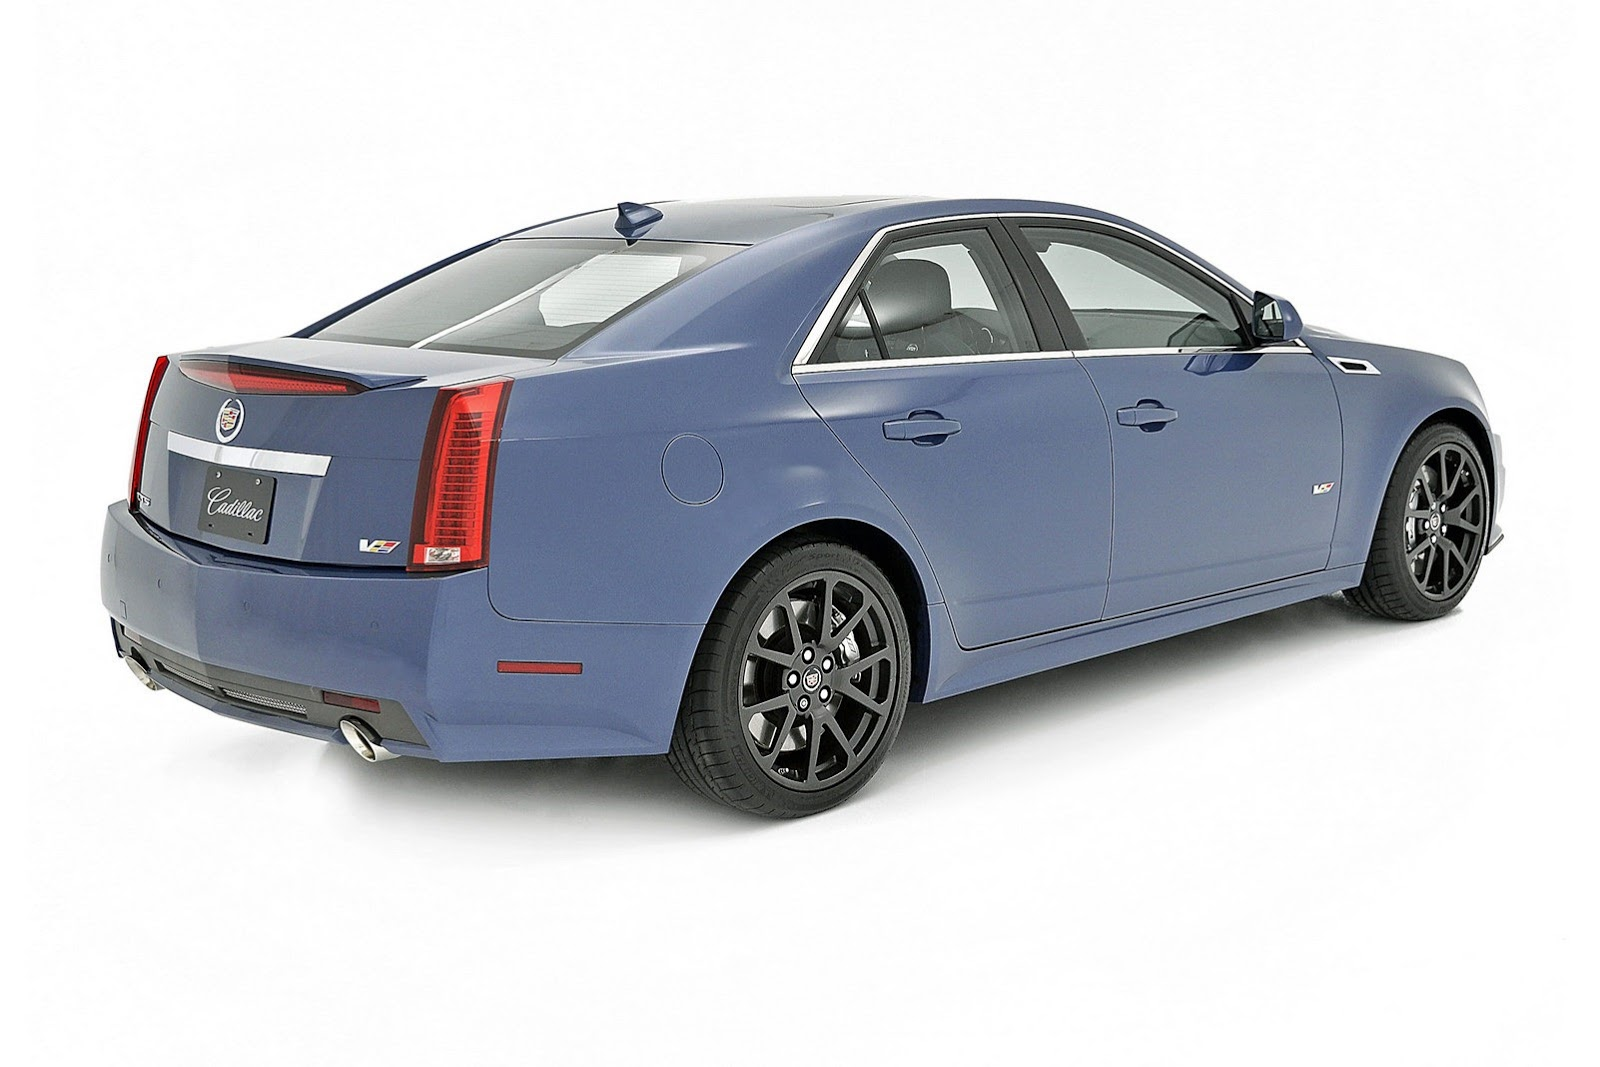 Cadillac Cts V Coupe >> Cadillac Announces Special Edition CTS Models - autoevolution